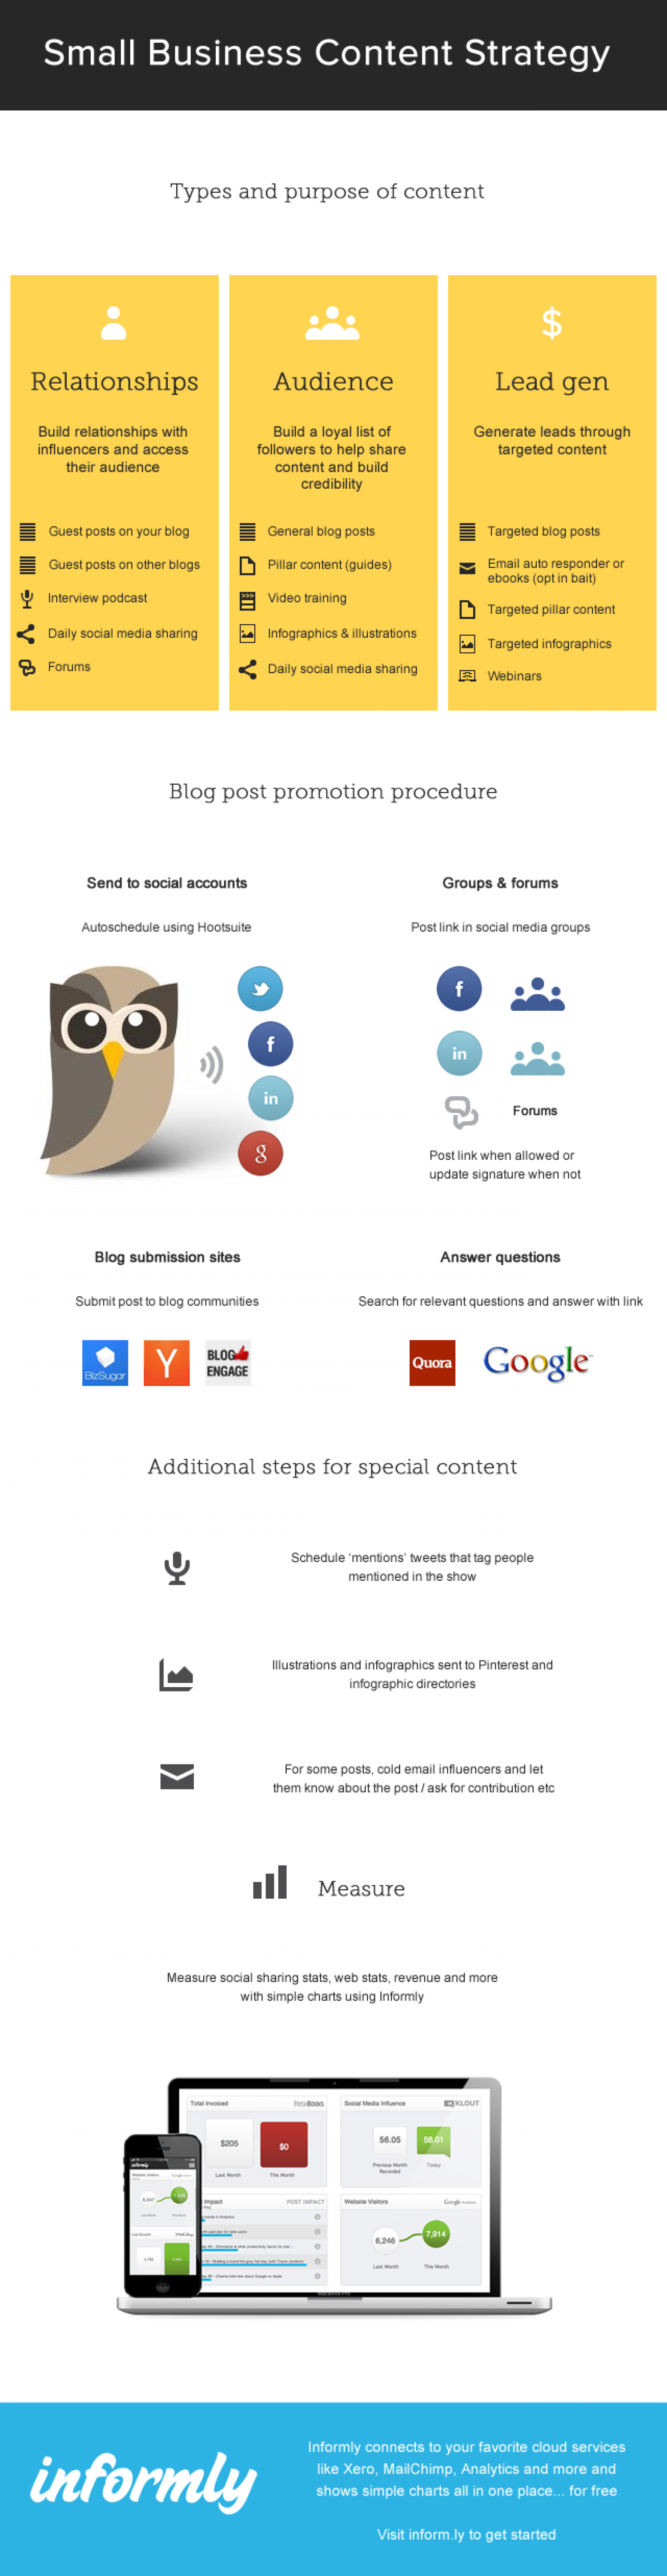 Small business content strategy Infographic